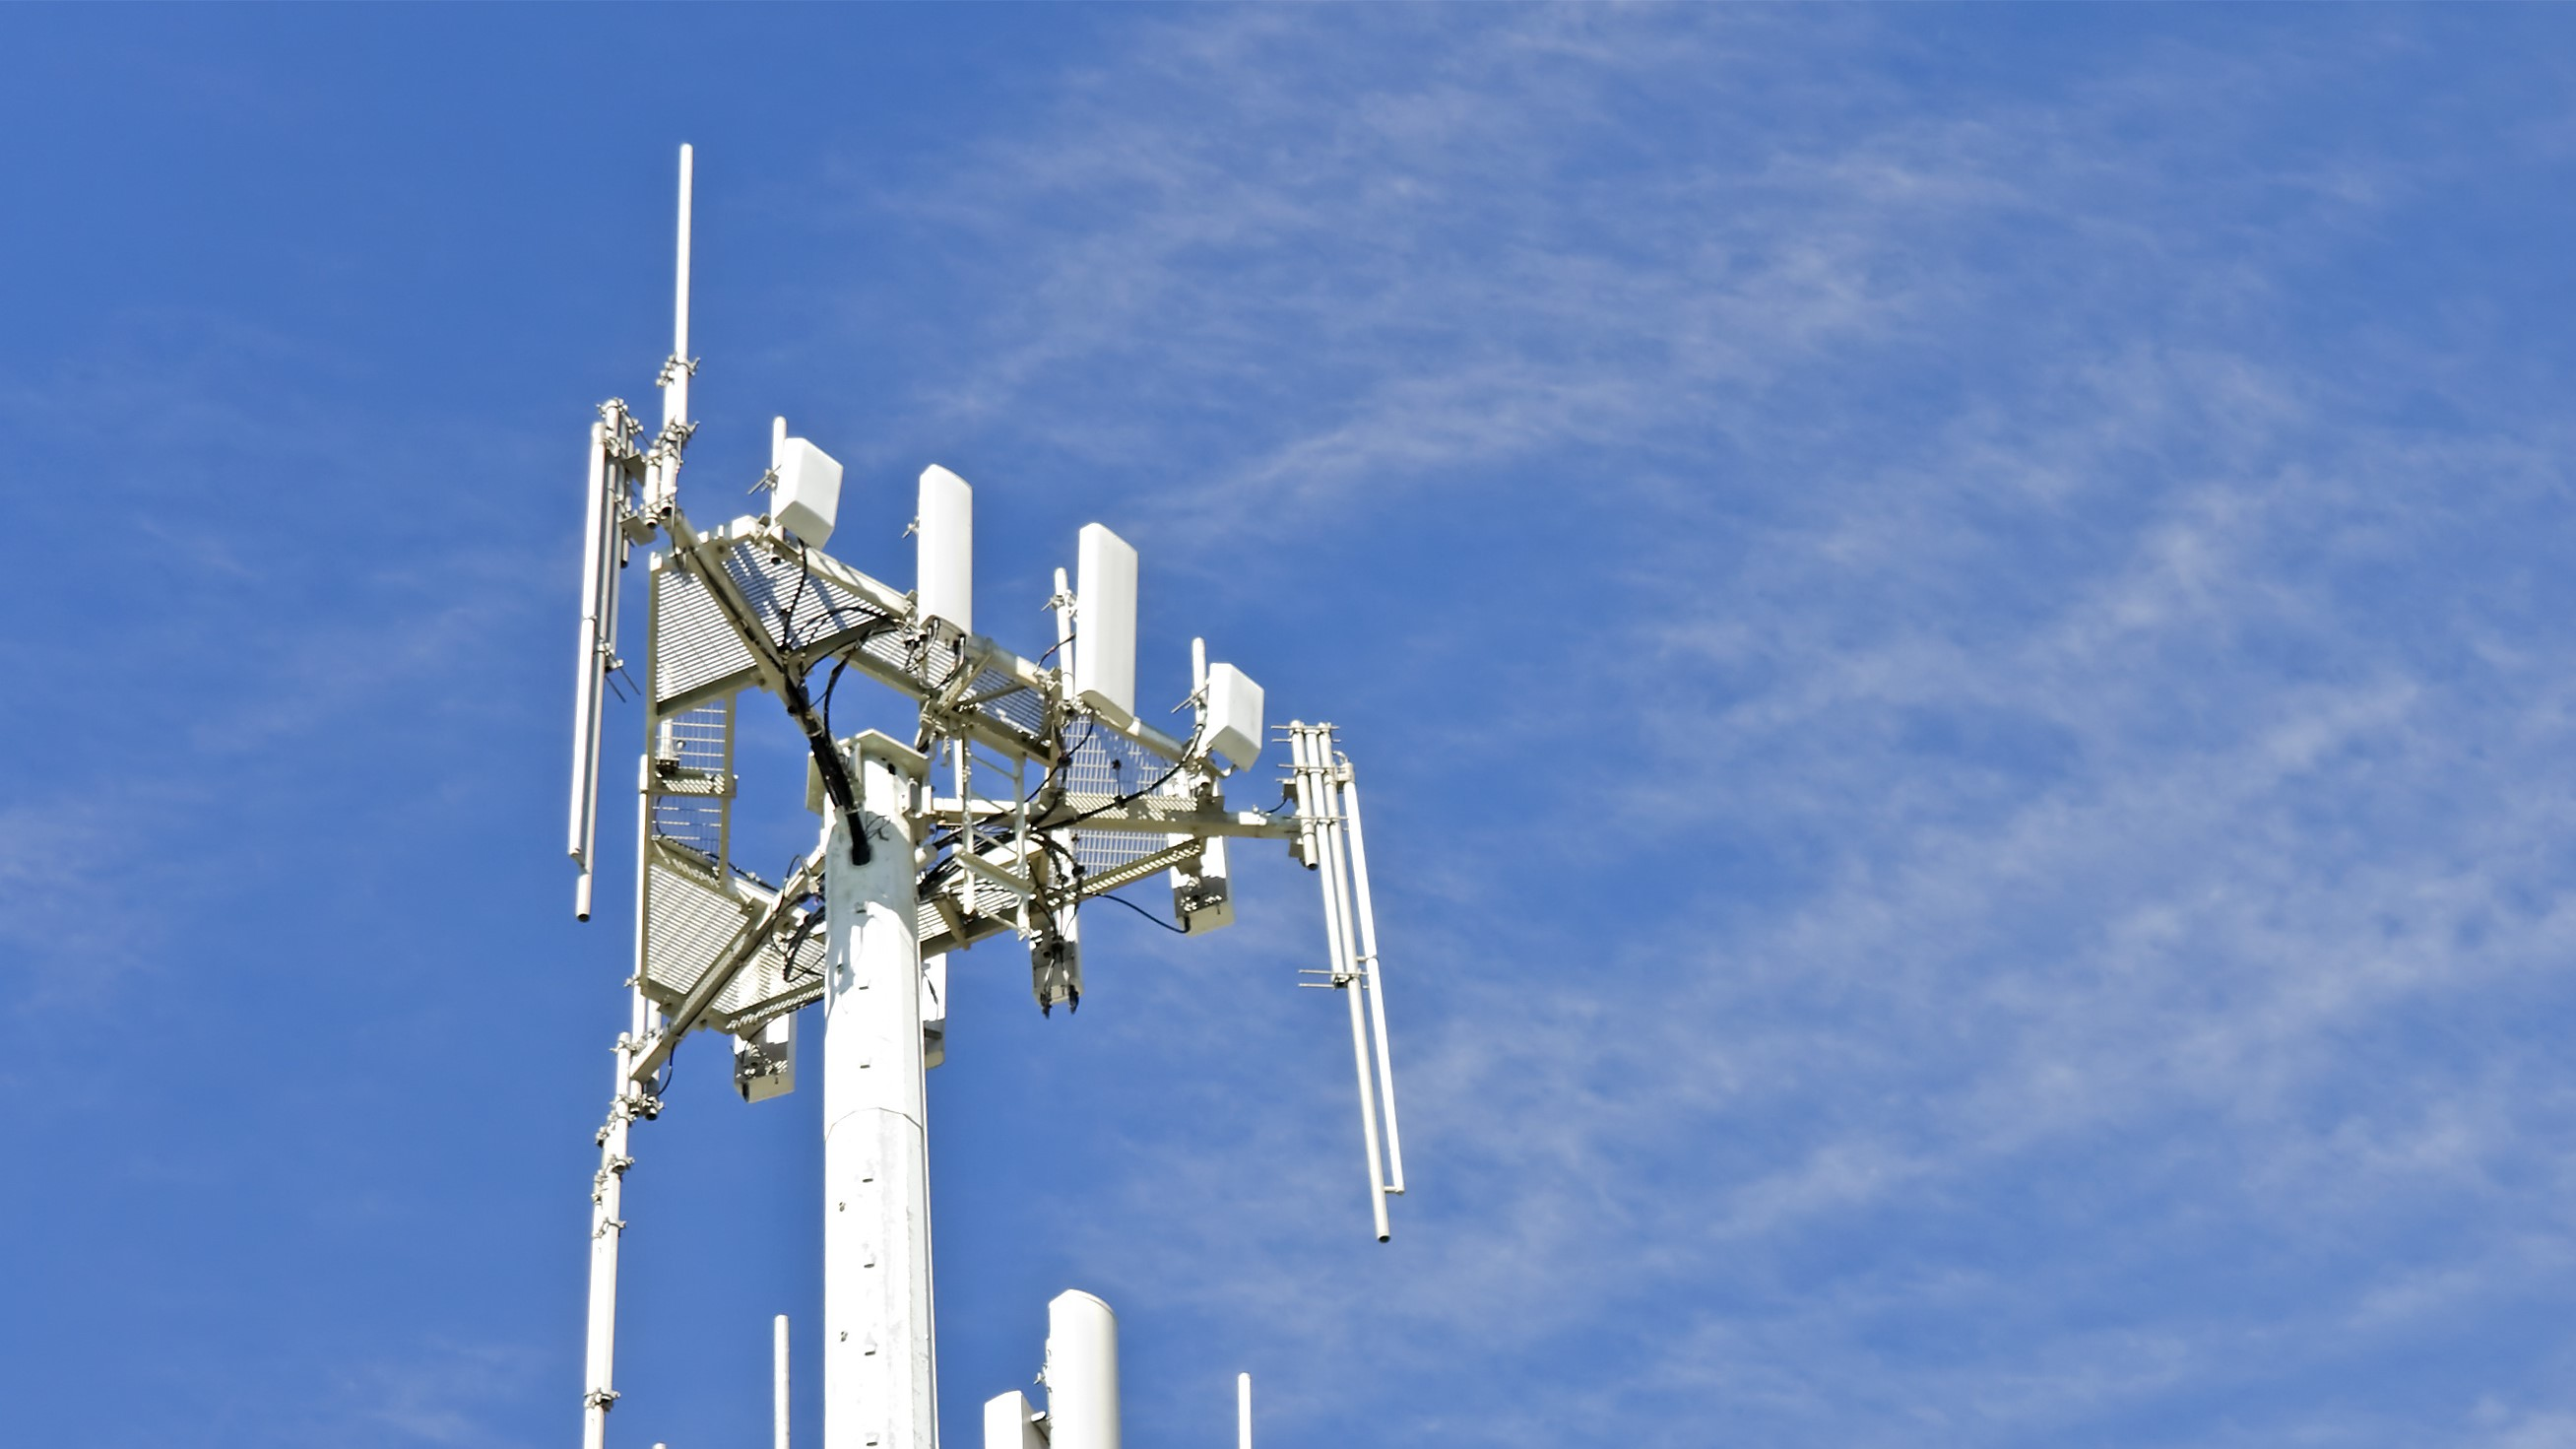 Cell phone telecommunication tower,blue sky,wispy clouds